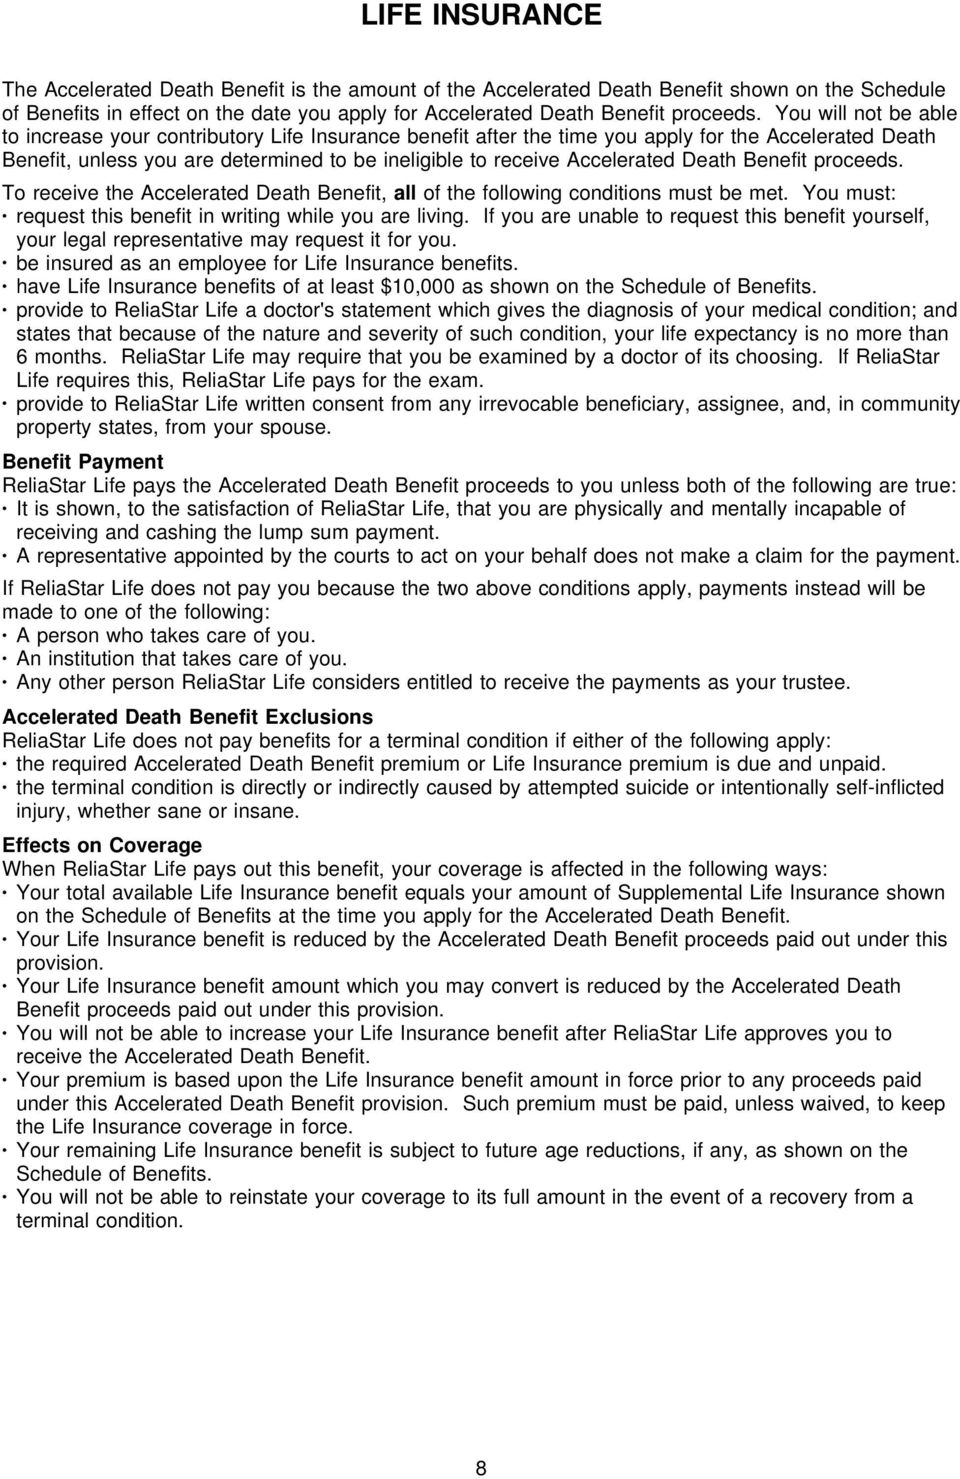 Death Benefit proceeds. To receive the Accelerated Death Benefit, all of the following conditions must be met. You must: request this benefit in writing while you are living.